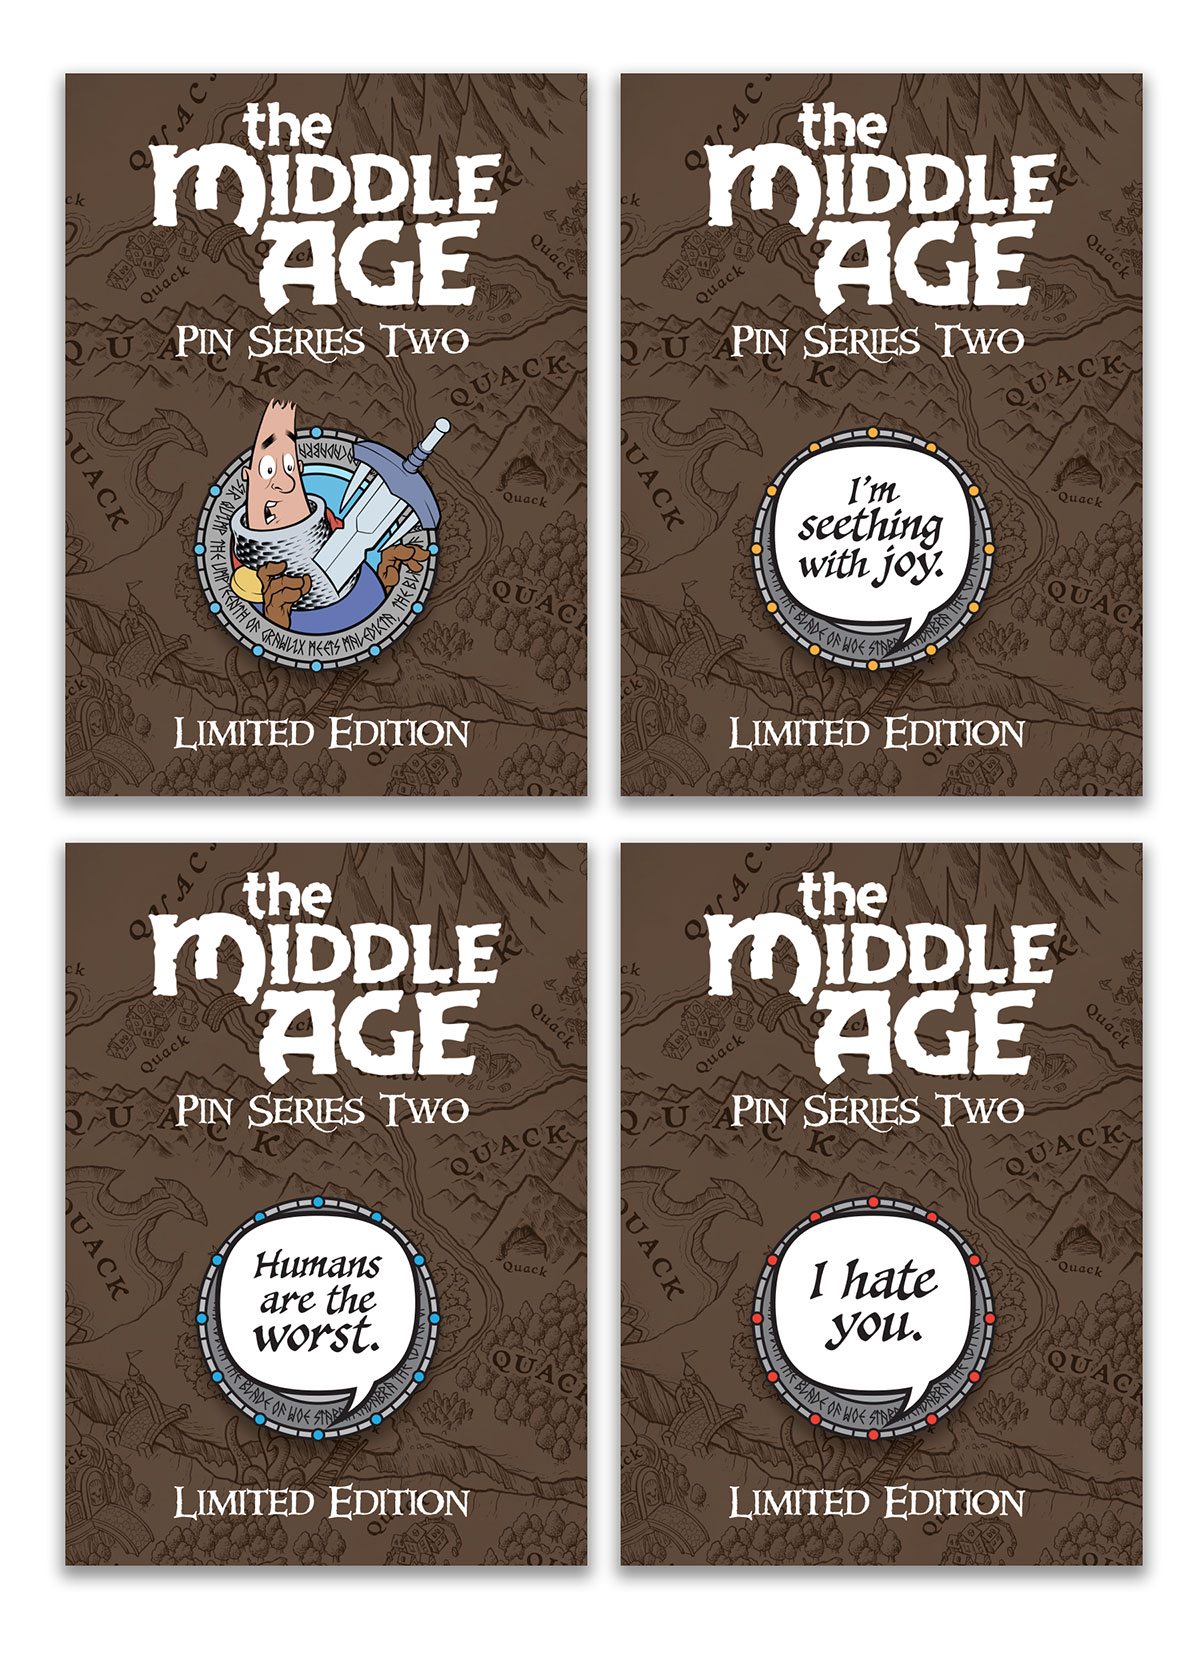 The Middle Age pins - Series Two